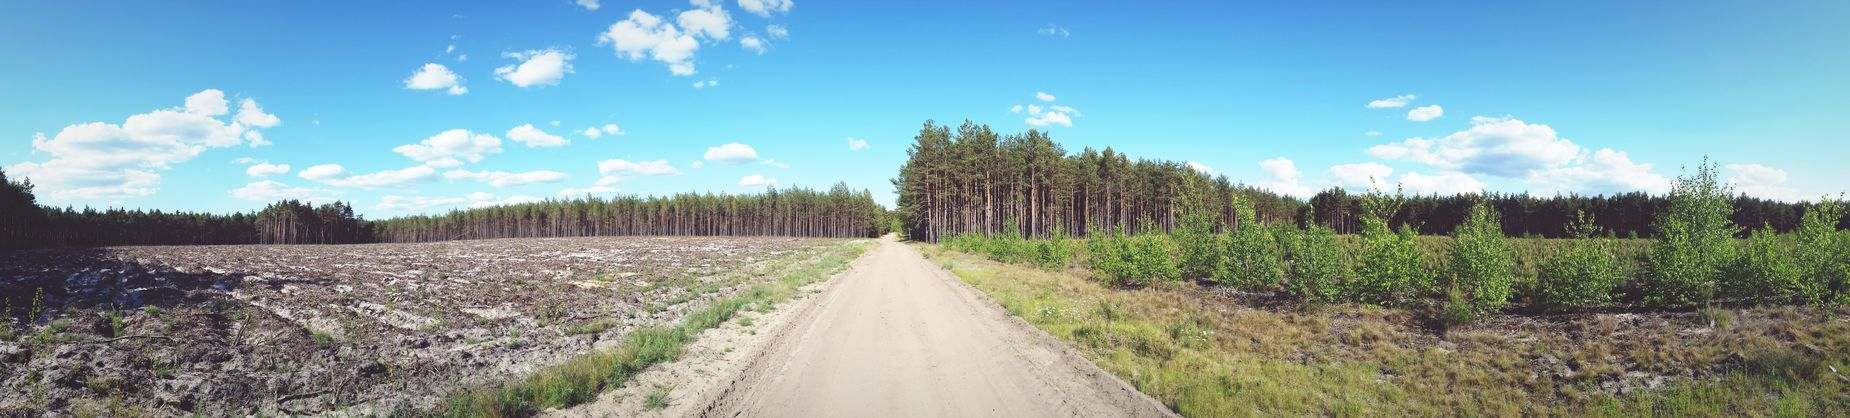 Smartphonephotography Panoramic Nature Photography Road Nature_collection Nature Blue Sky Clouds Nature Colors Field